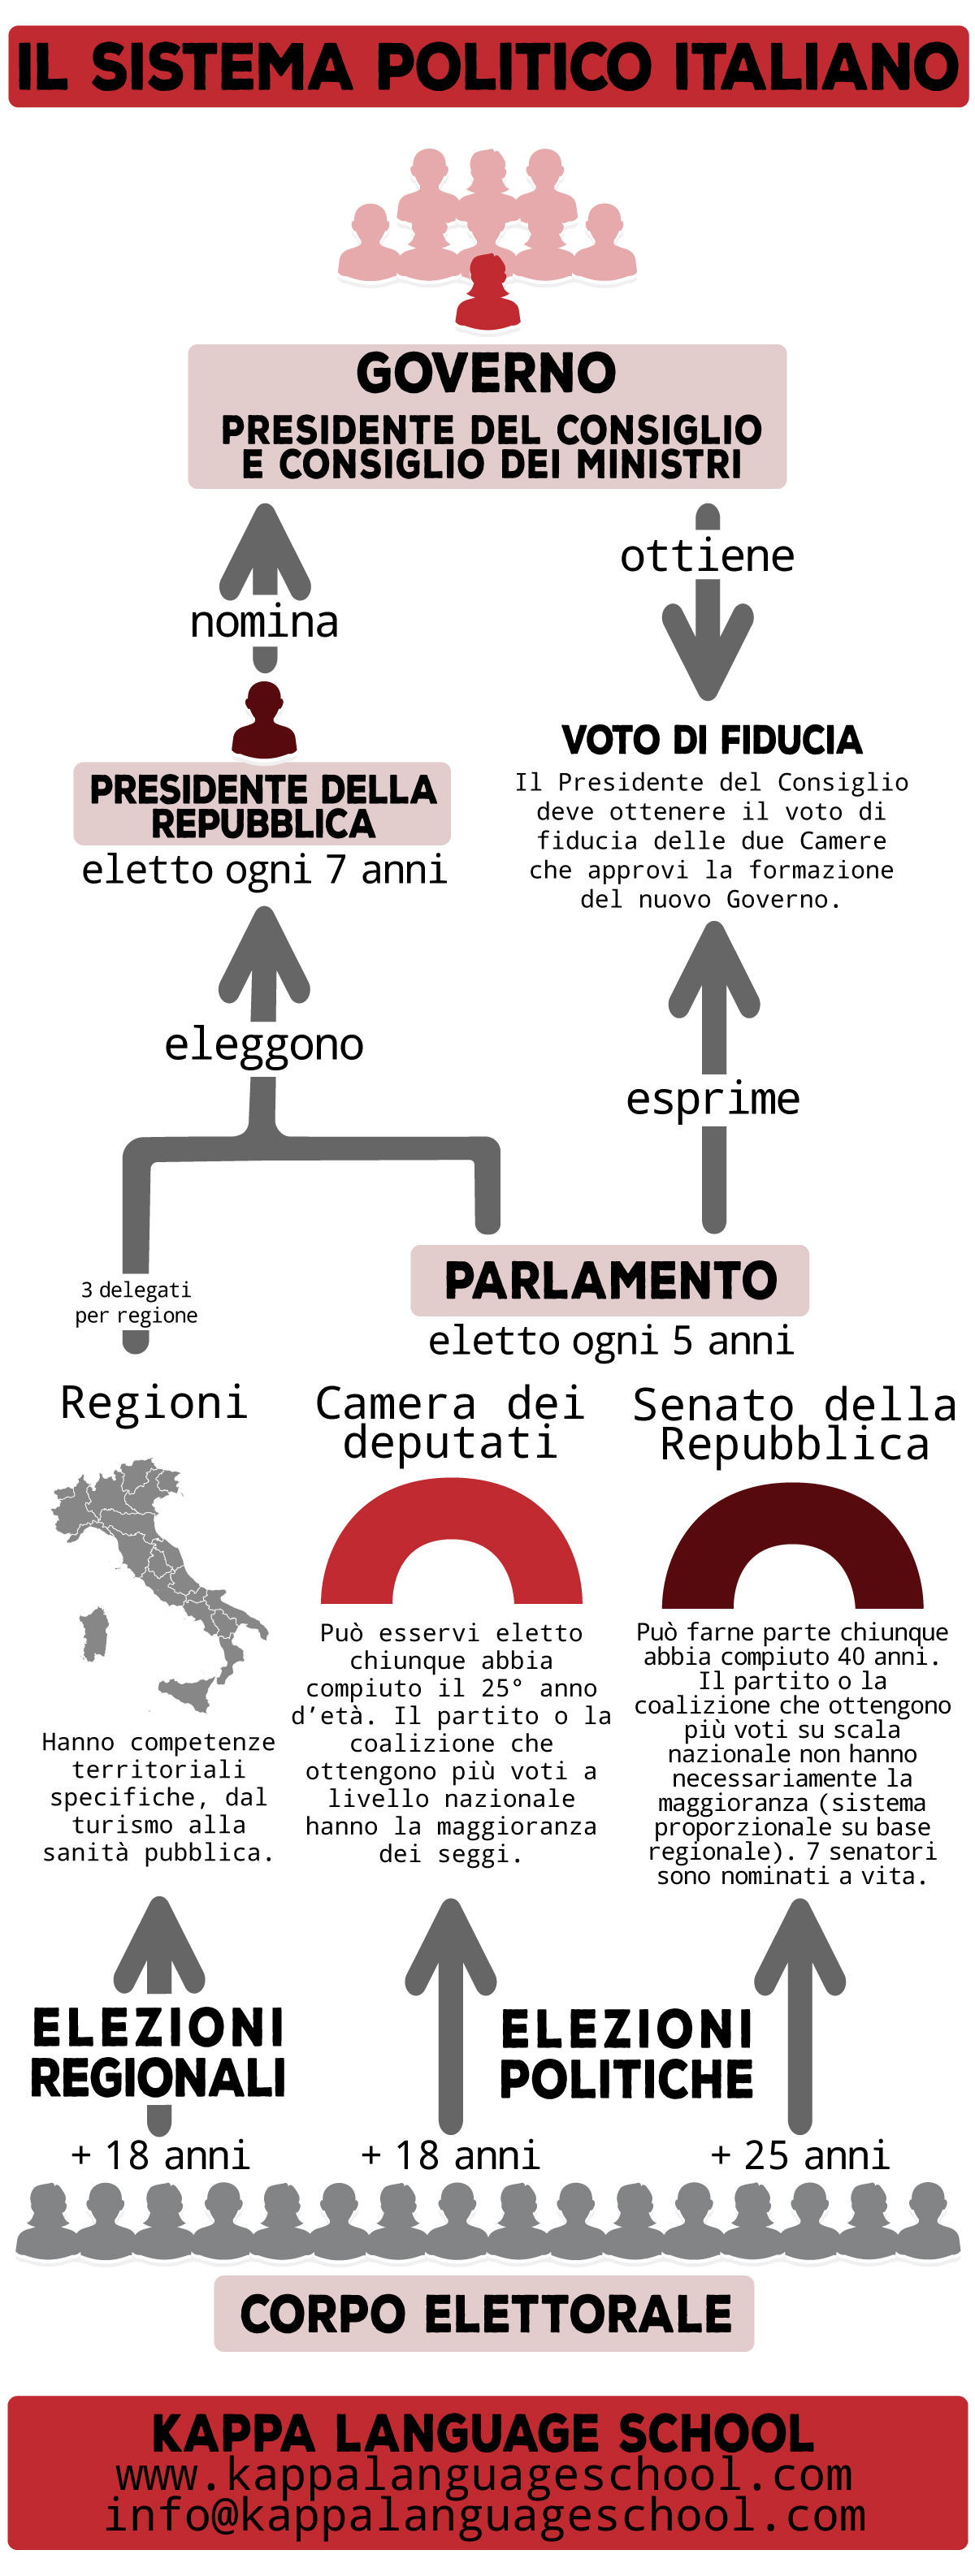 Italian politics and electoral system: learn Italian words infographic